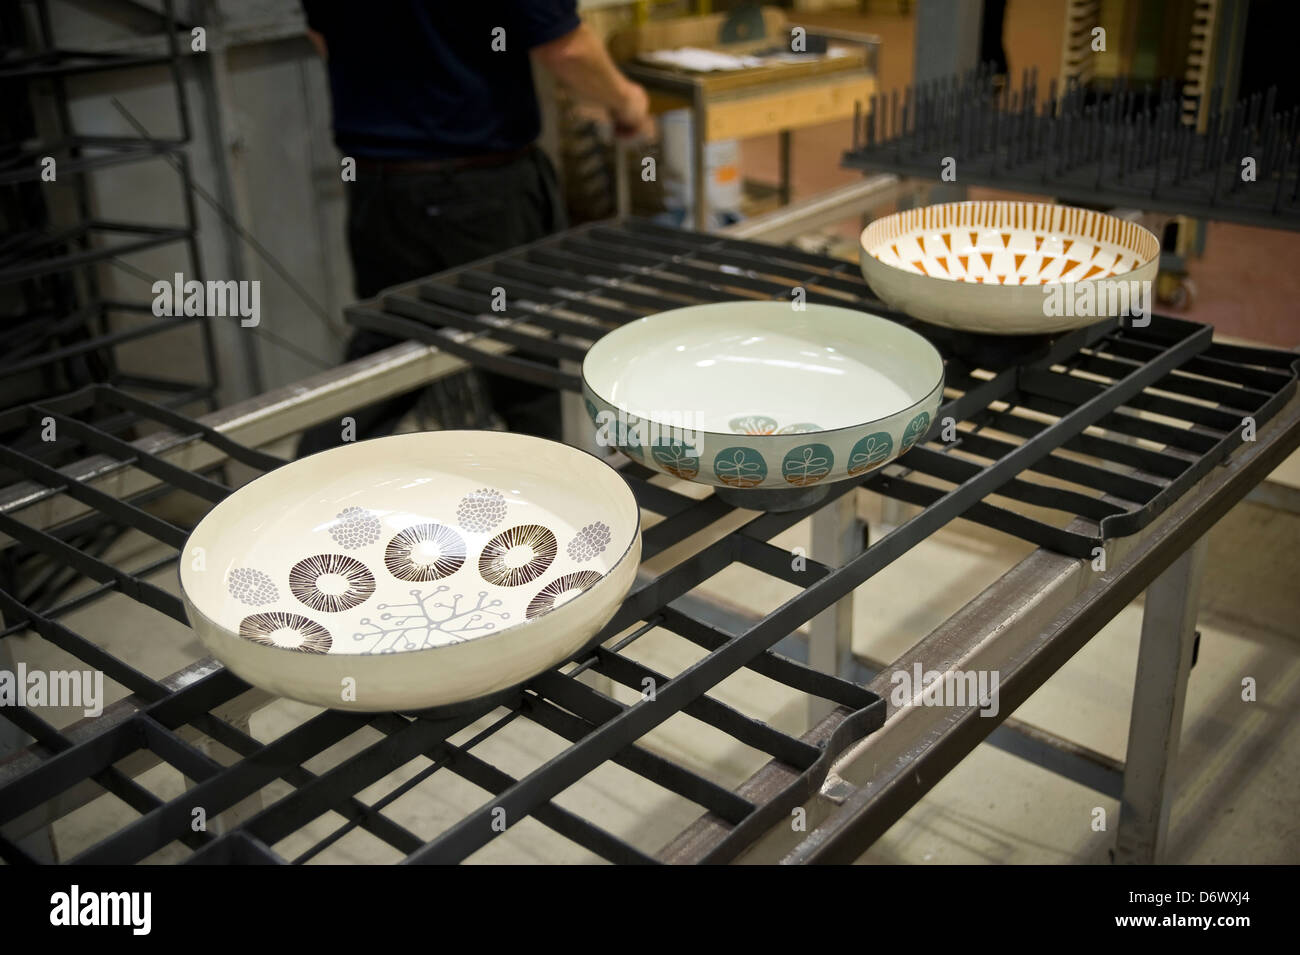 Steel enameled bowls cooling down after coming out of an enameling oven. - Stock Image